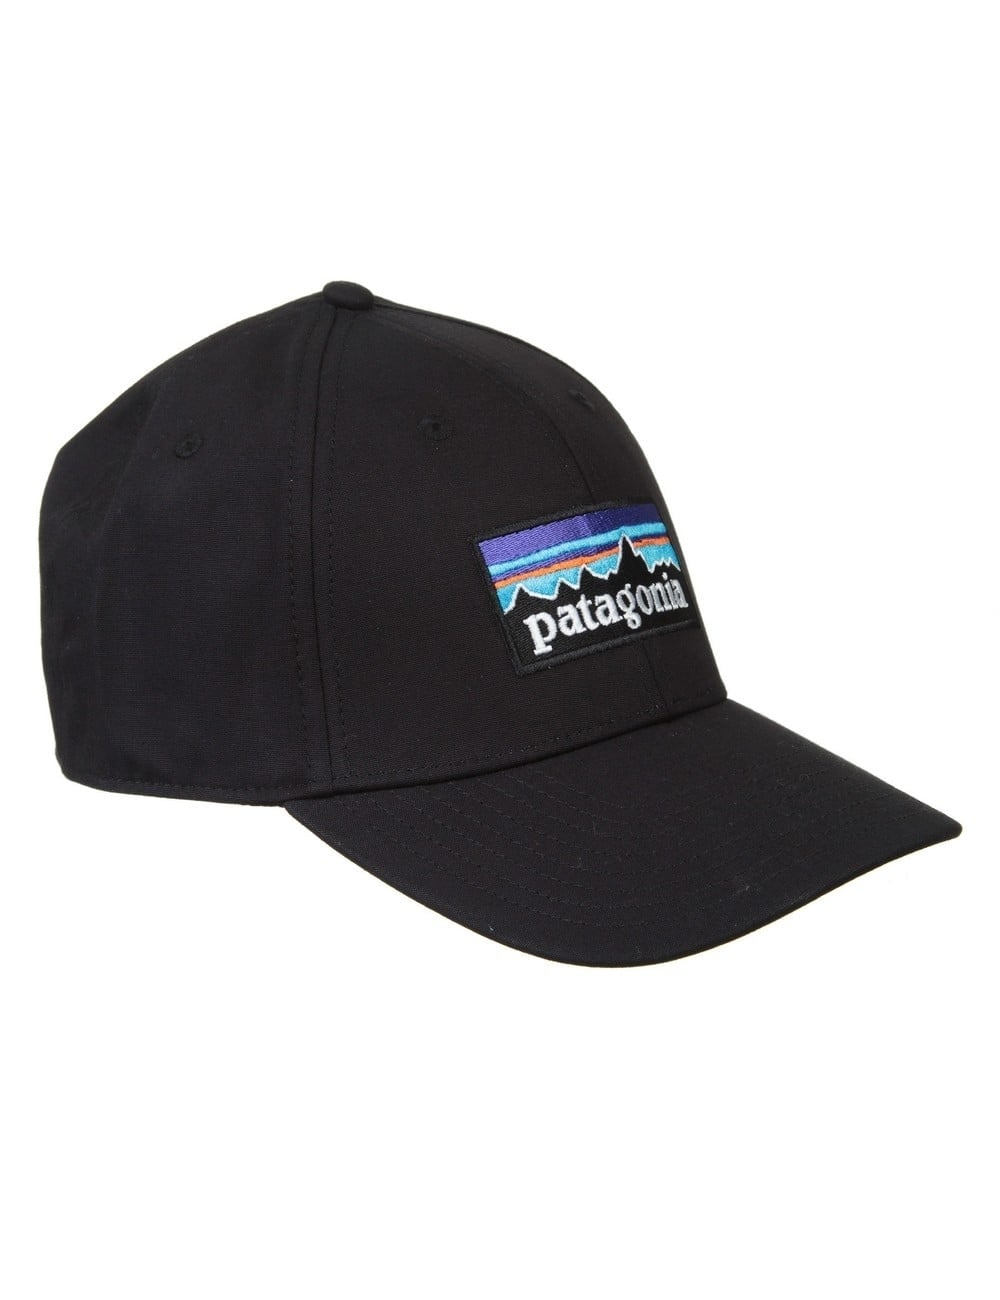 b9d9f2402465d Patagonia P-6 Logo Stretch Fit Hat - Black - Accessories from Fat ...